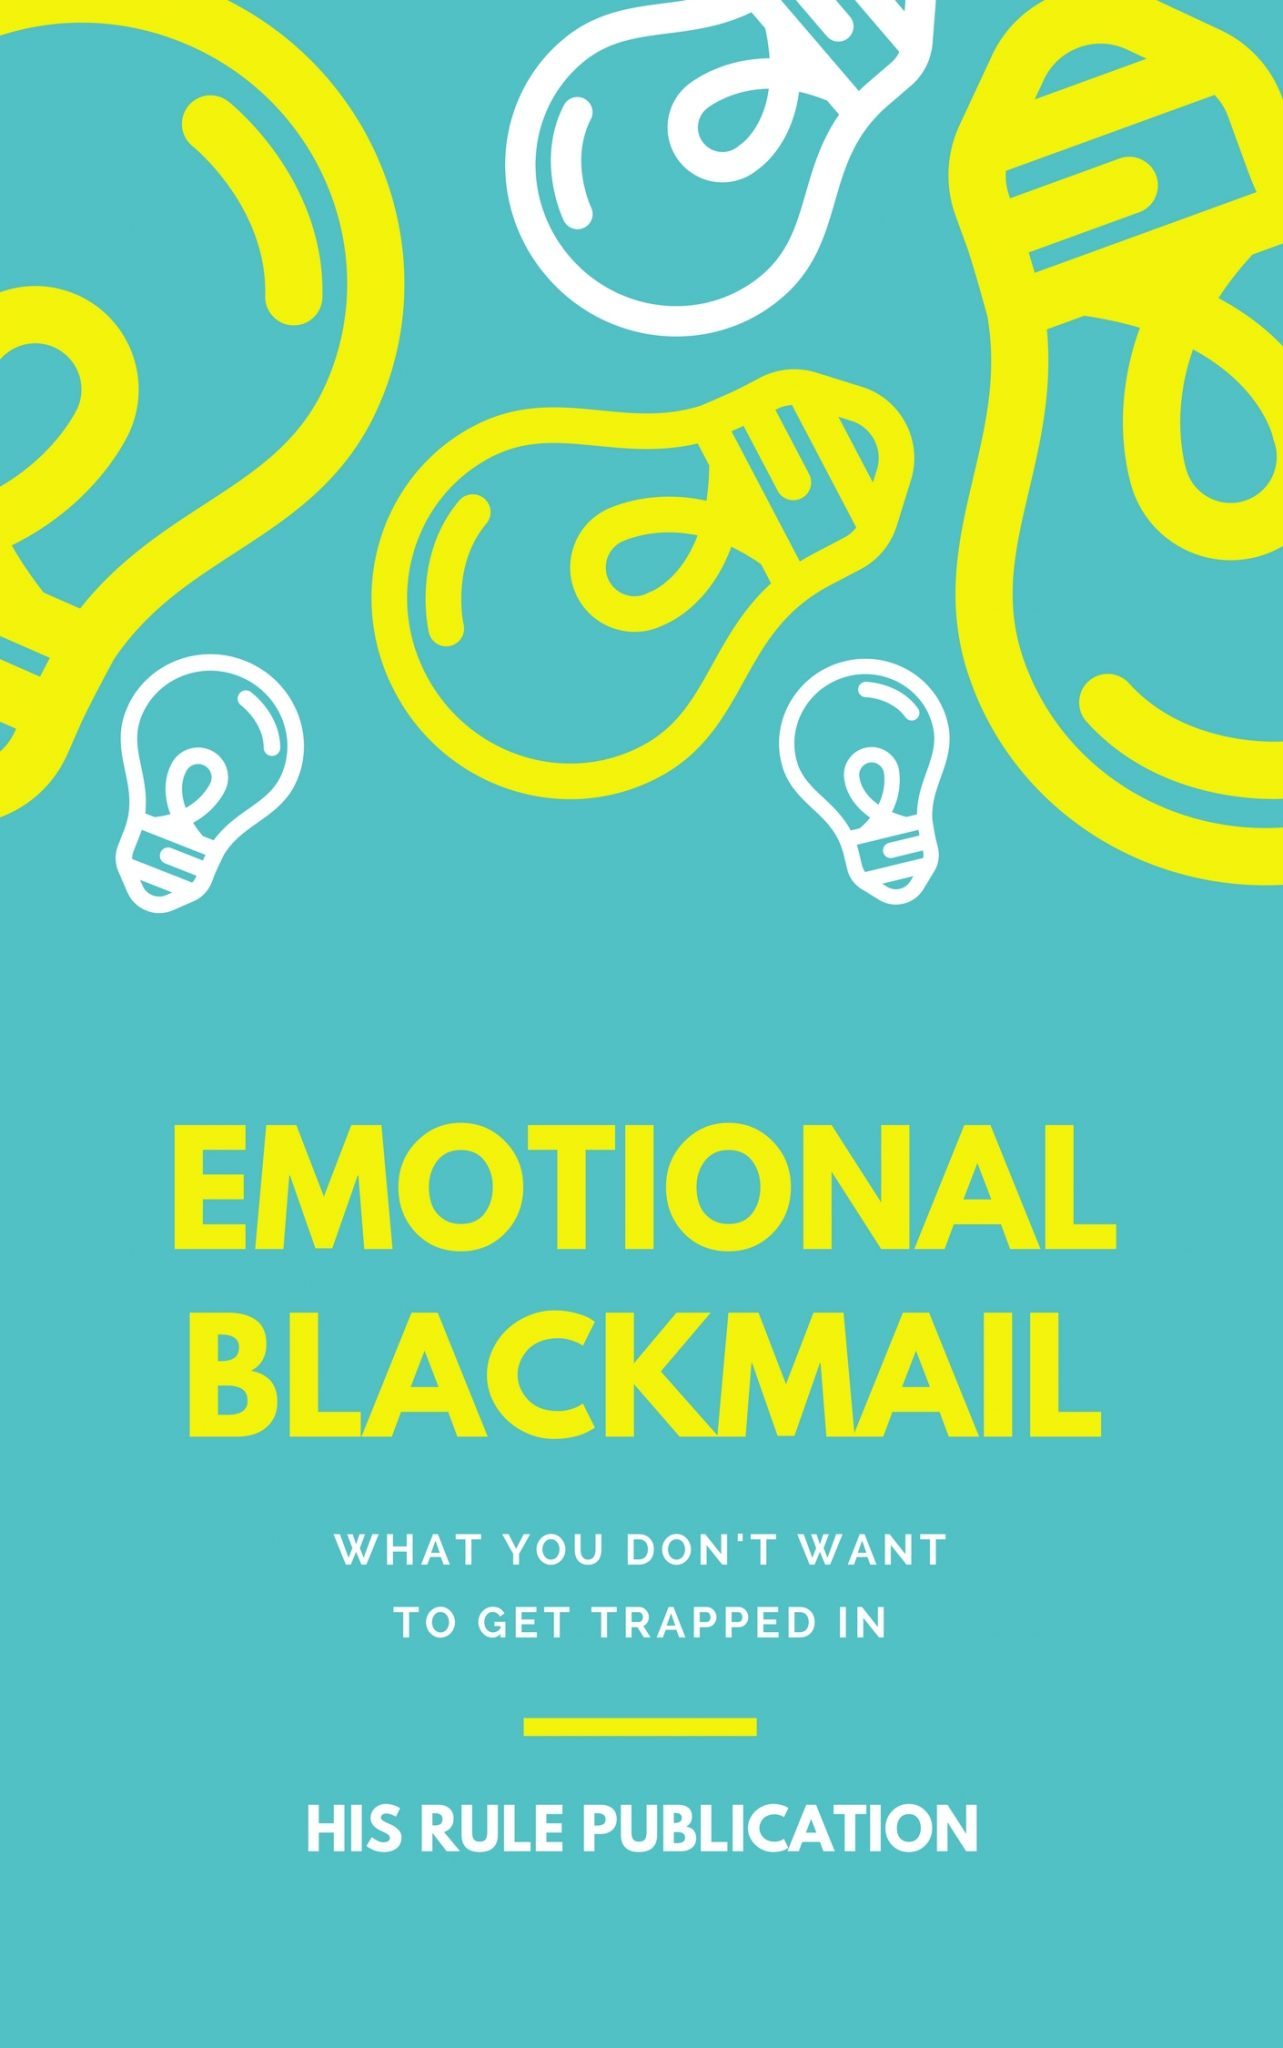 EMOTIONAL BLACK MAIL | HIS RULE PUBLICATION